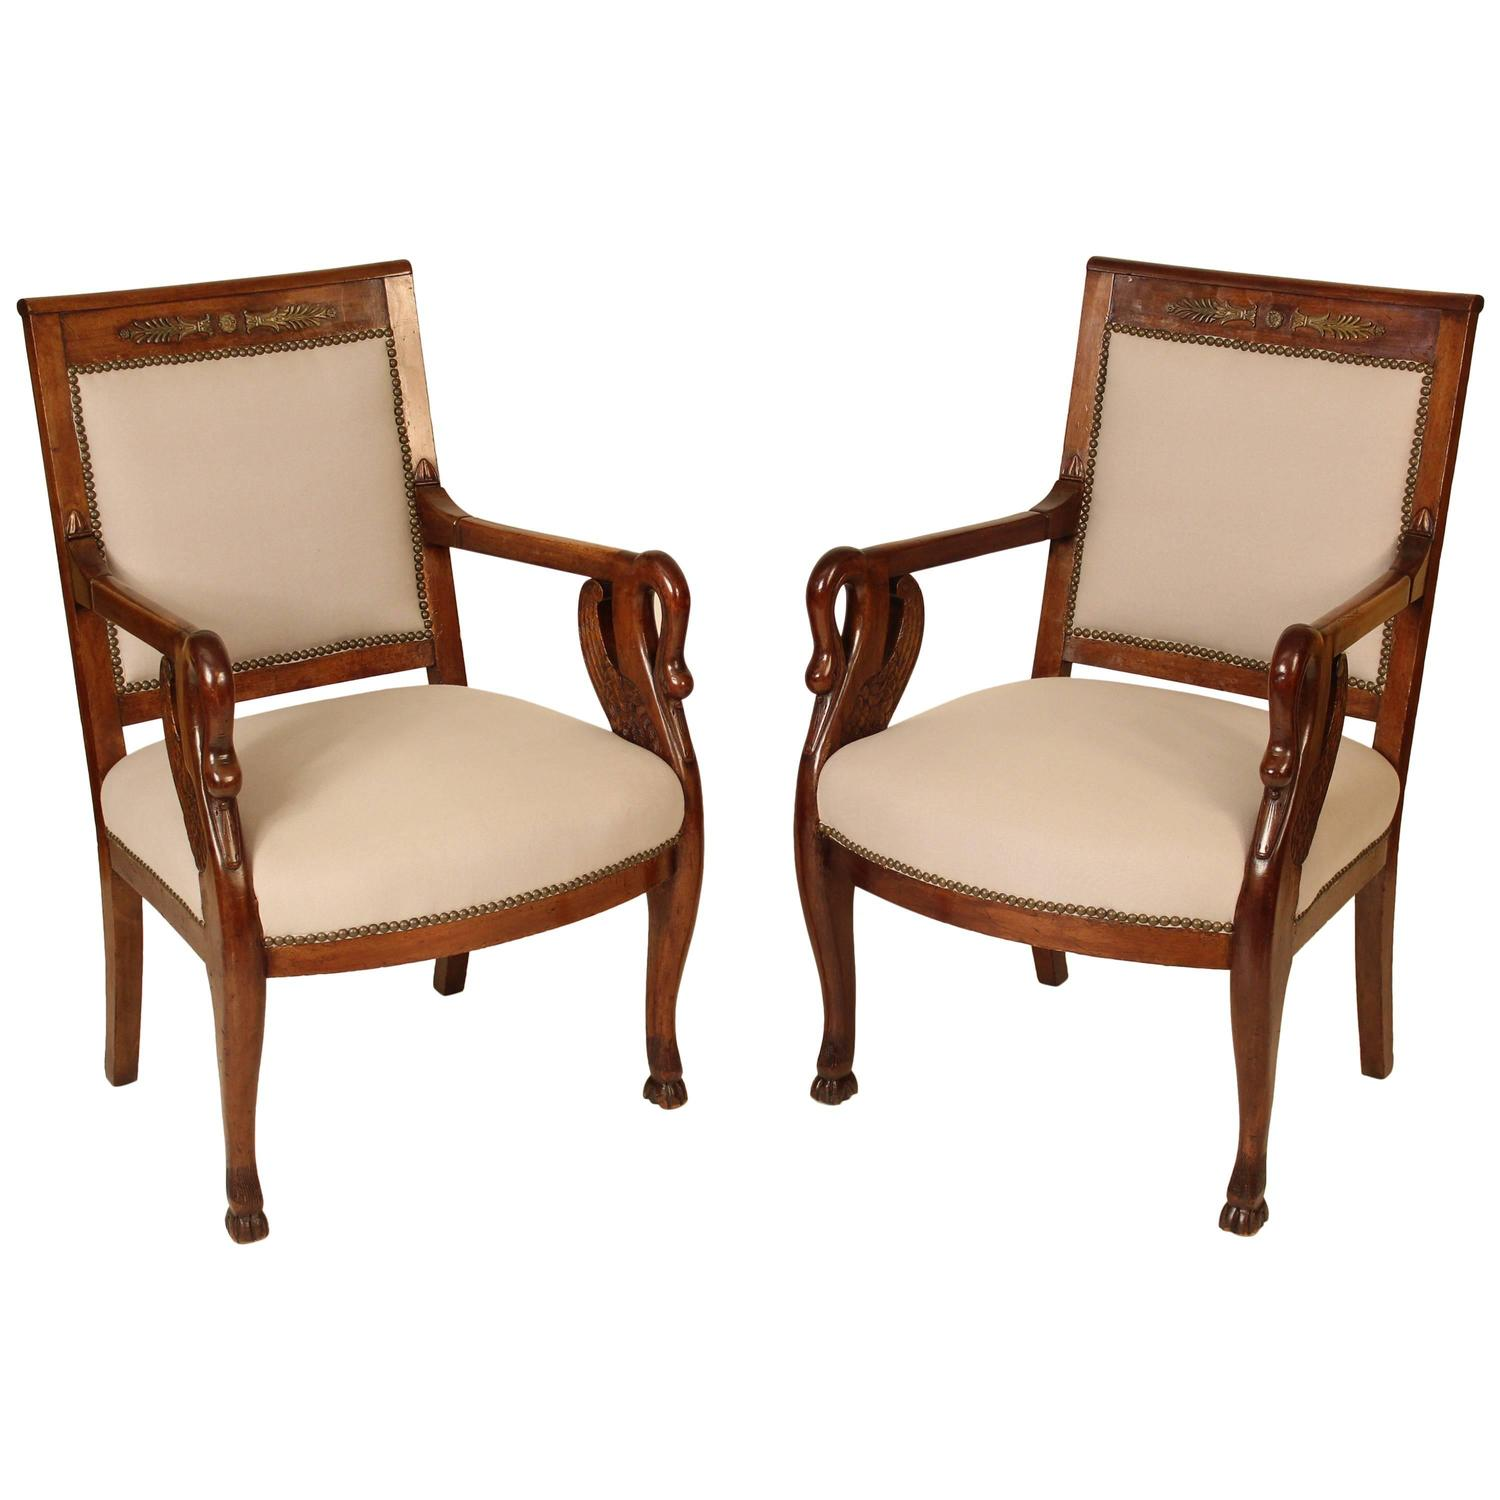 Pair of empire style swan carved armchairs for sale at 1stdibs for Swan chairs for sale